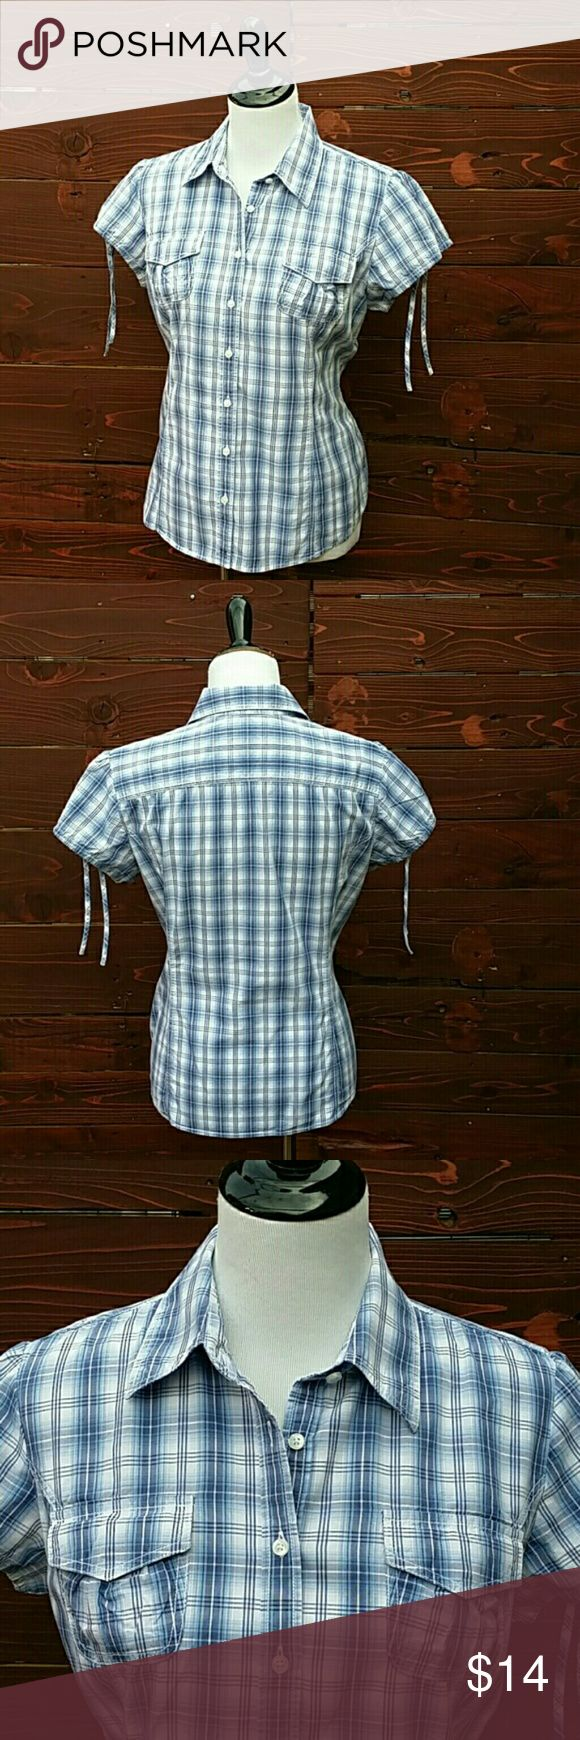 Tommy Hilfiger Blue Plaid Short Sleeve Button Down In excellent used condition. Tommy Hilfiger blue paid, short sleeve, button down shirt. Shirt features draw string sleeve with tie. Tommy Hilfiger Tops Button Down Shirts